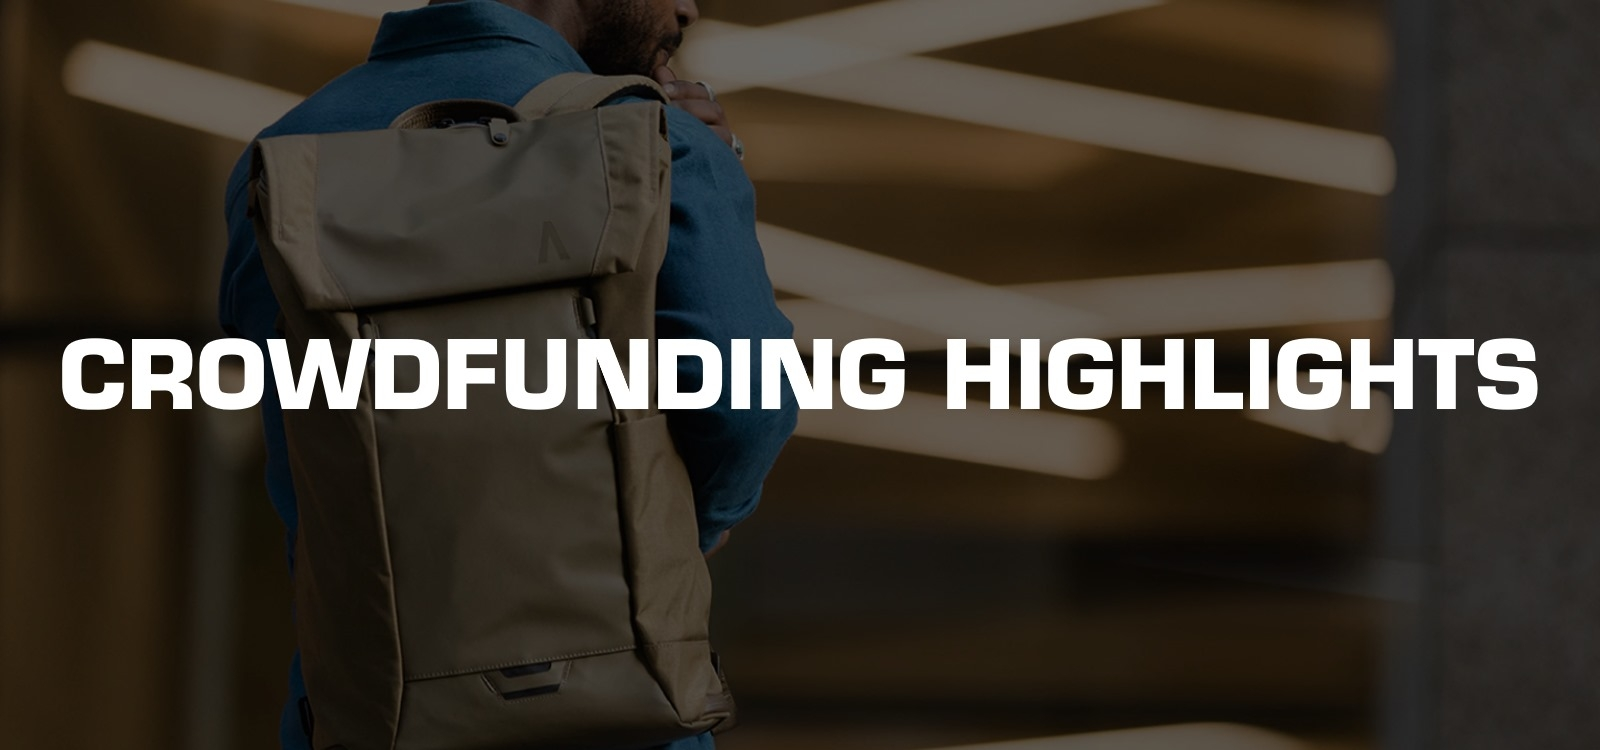 Crowdfunding Highlights